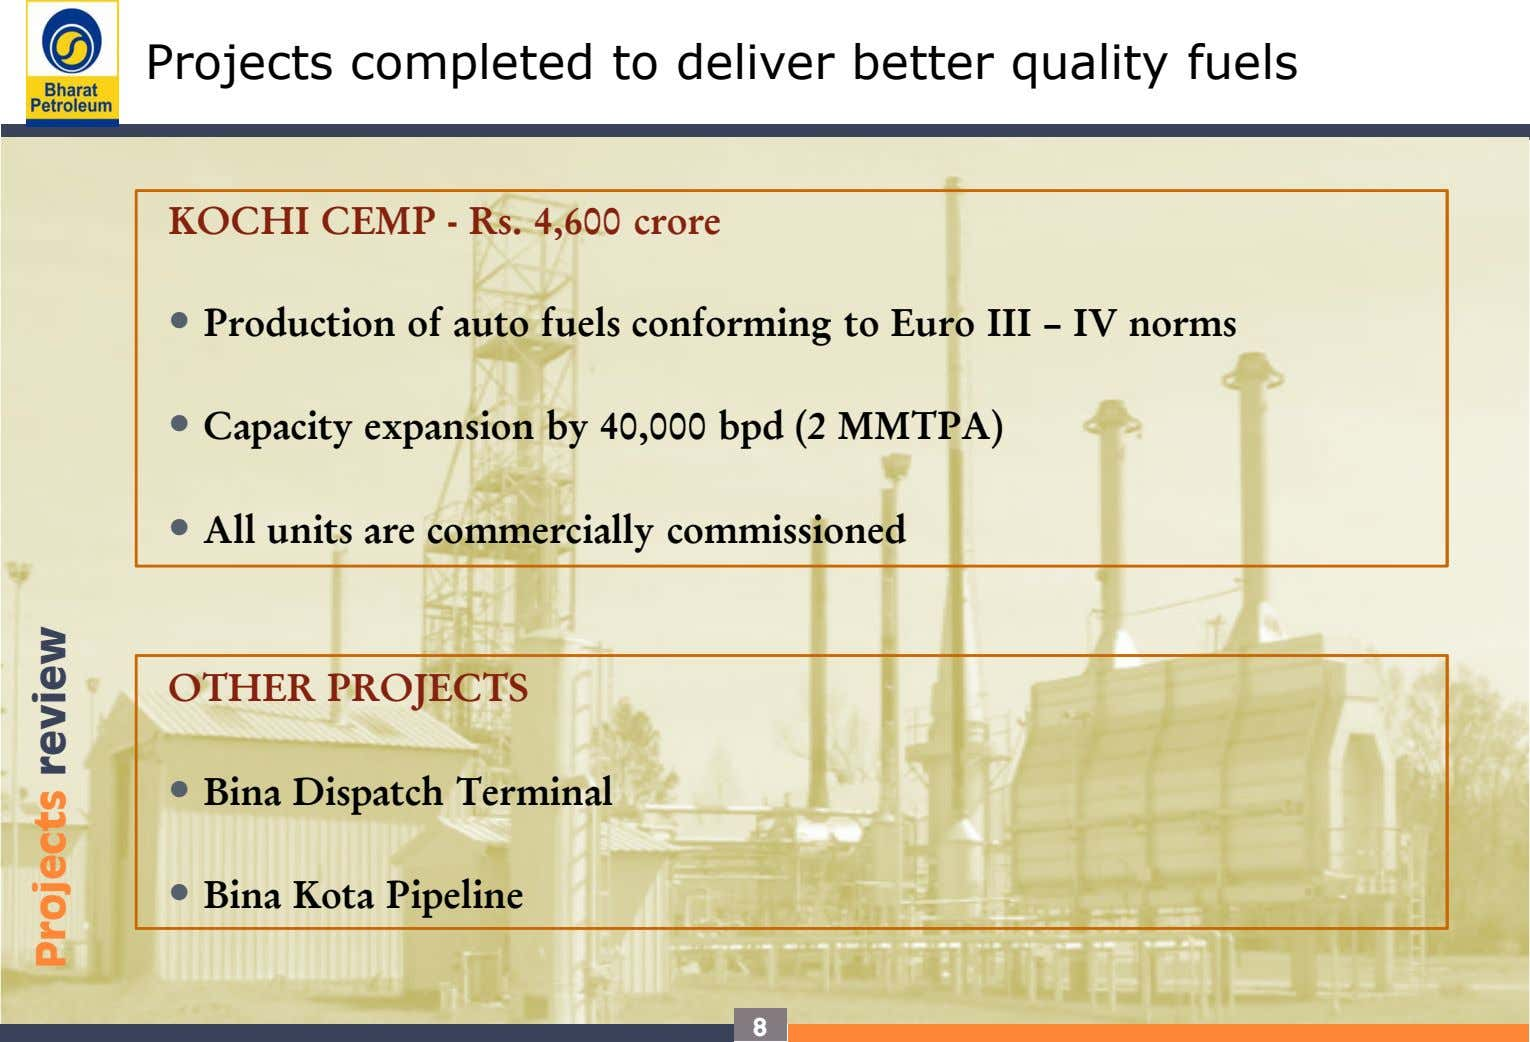 Projects completed to deliver better quality fuels KOCHI CEMP - Rs. 4,600 crore • Production